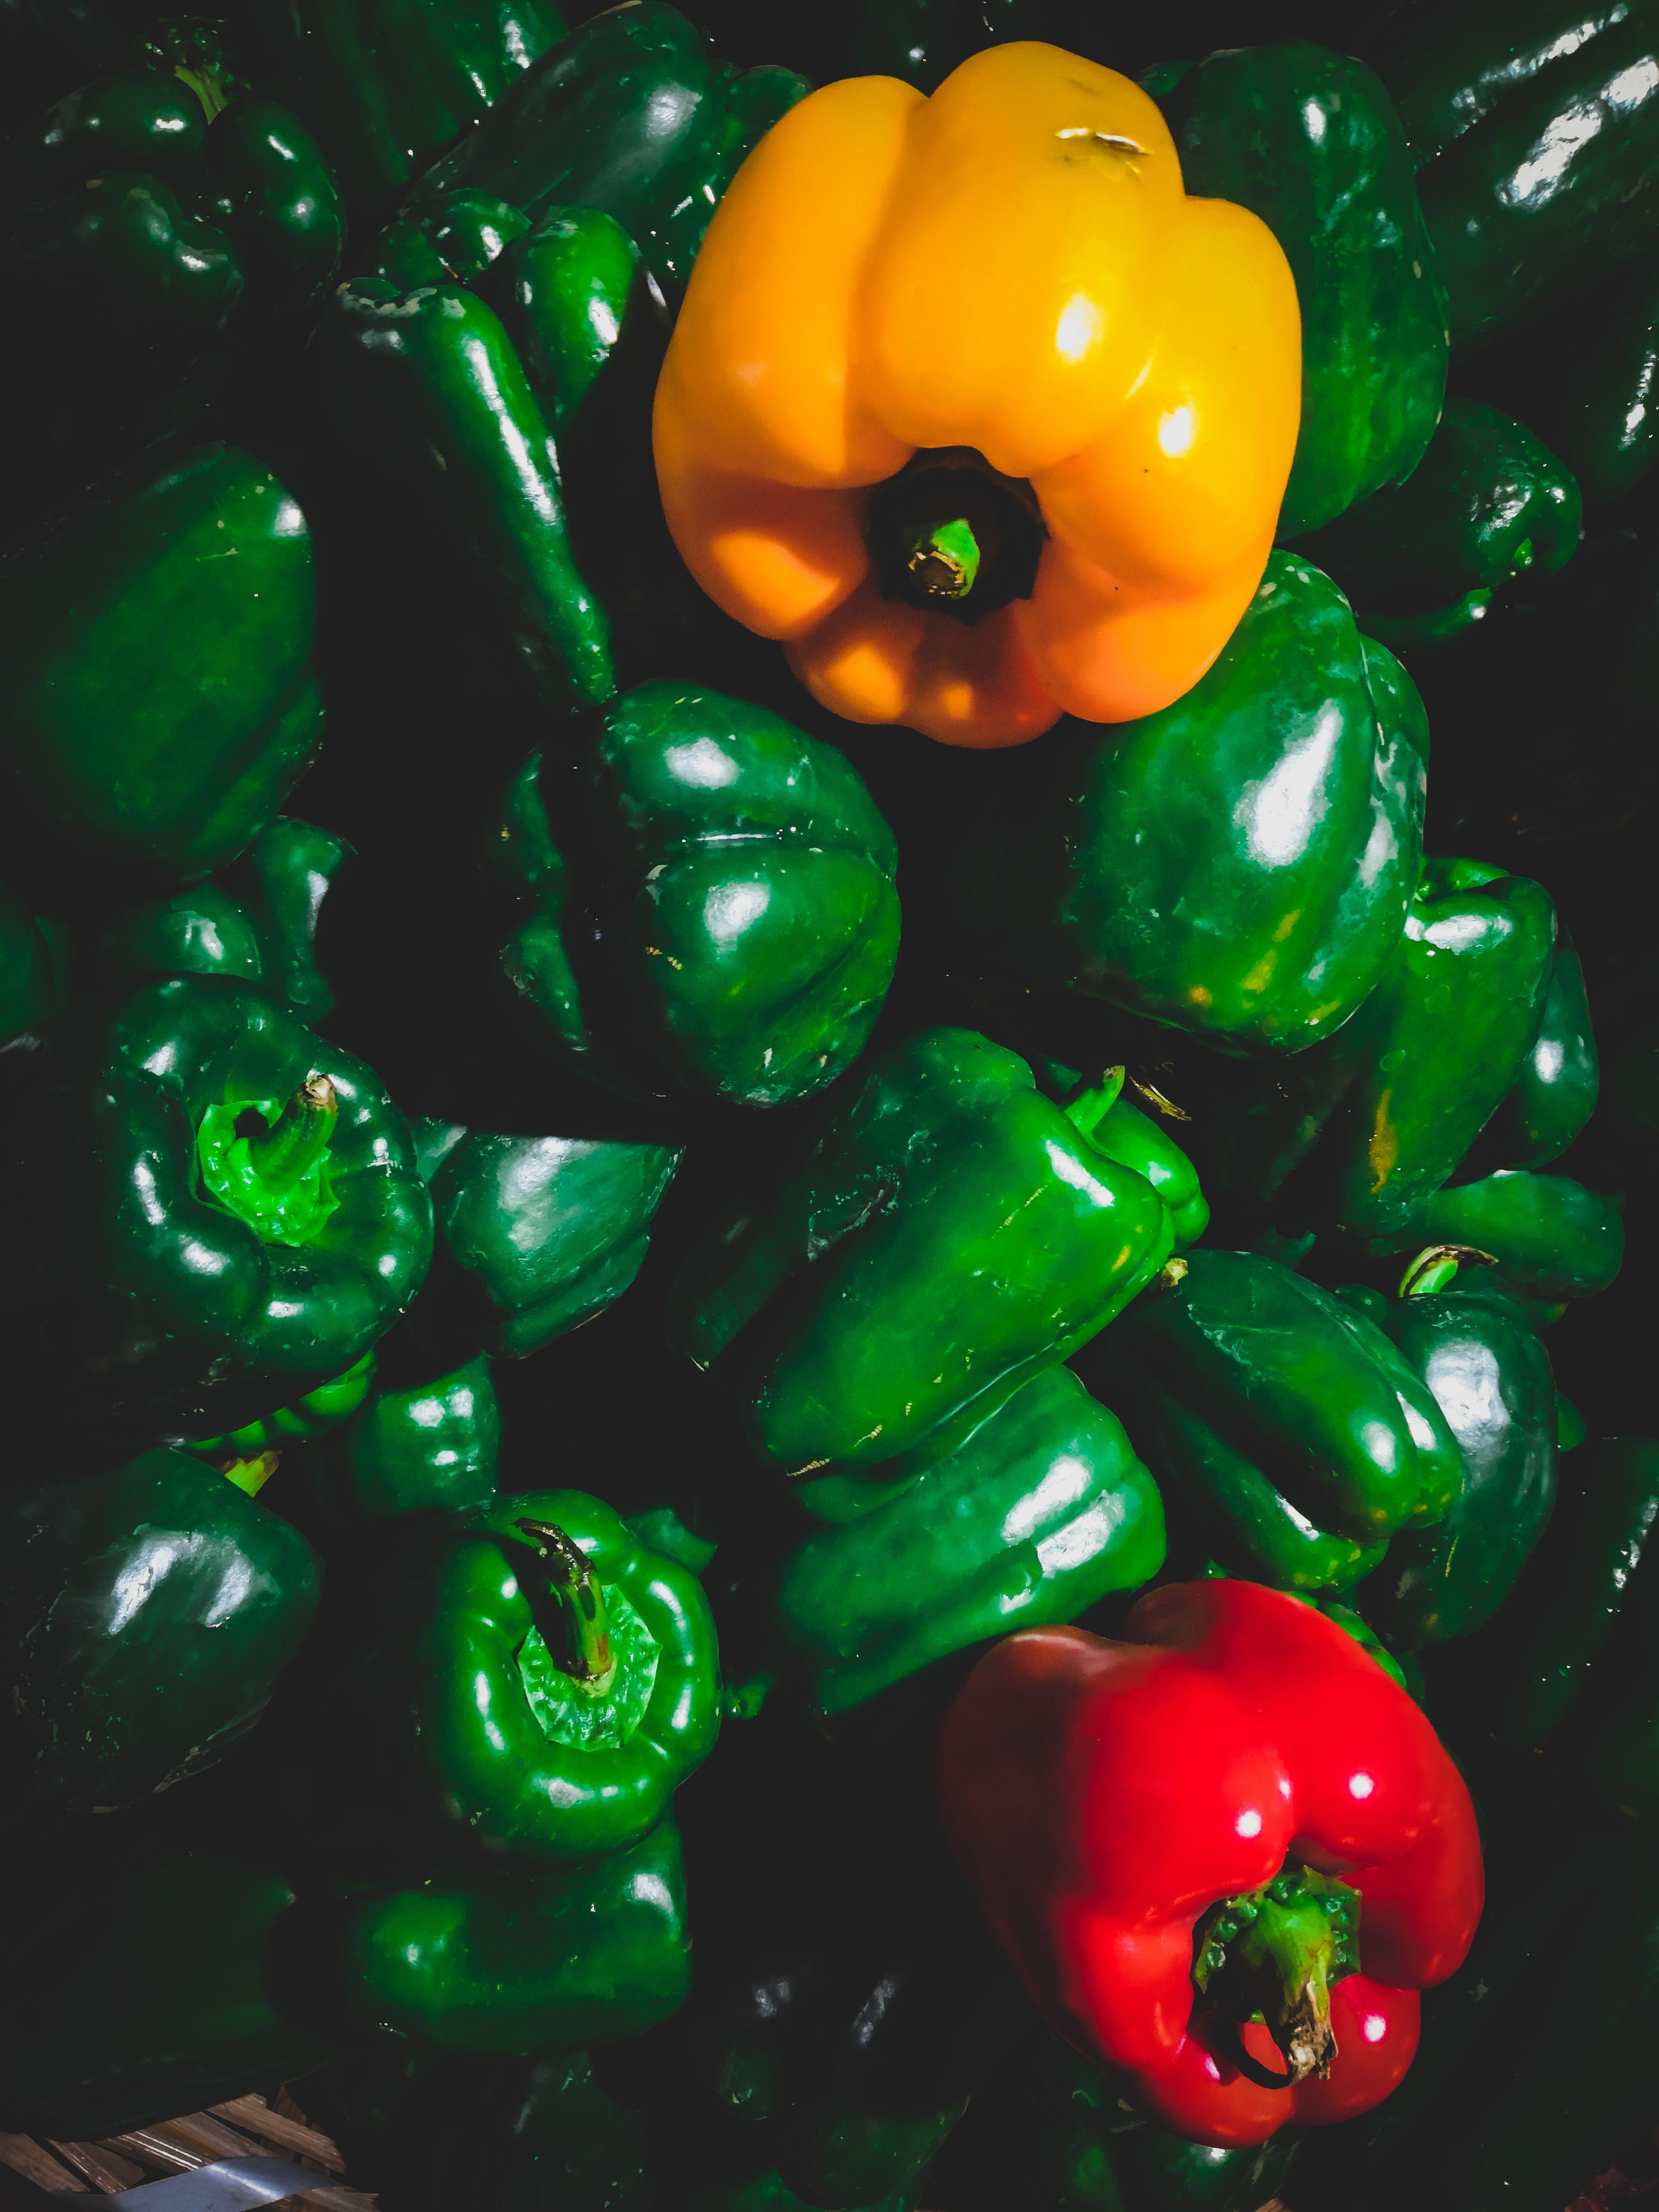 Green, Yellow, and Red Bell Pepper Lot